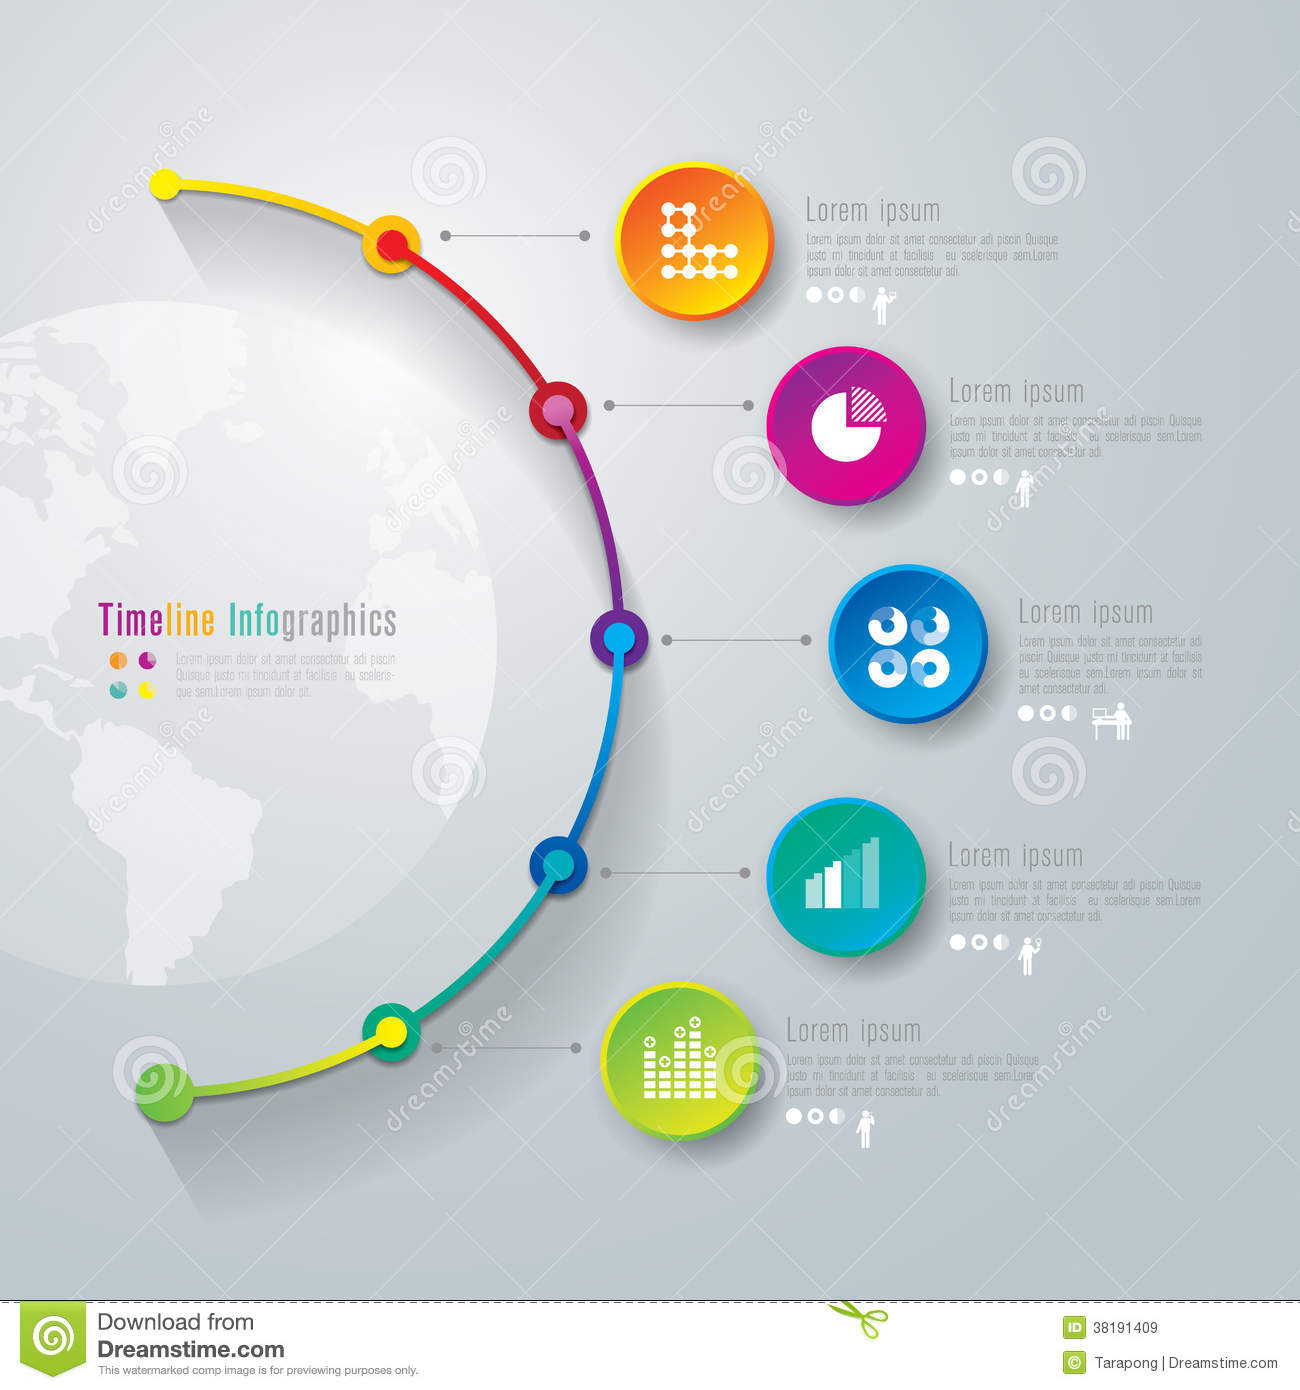 timeline infographics design template diagram communication